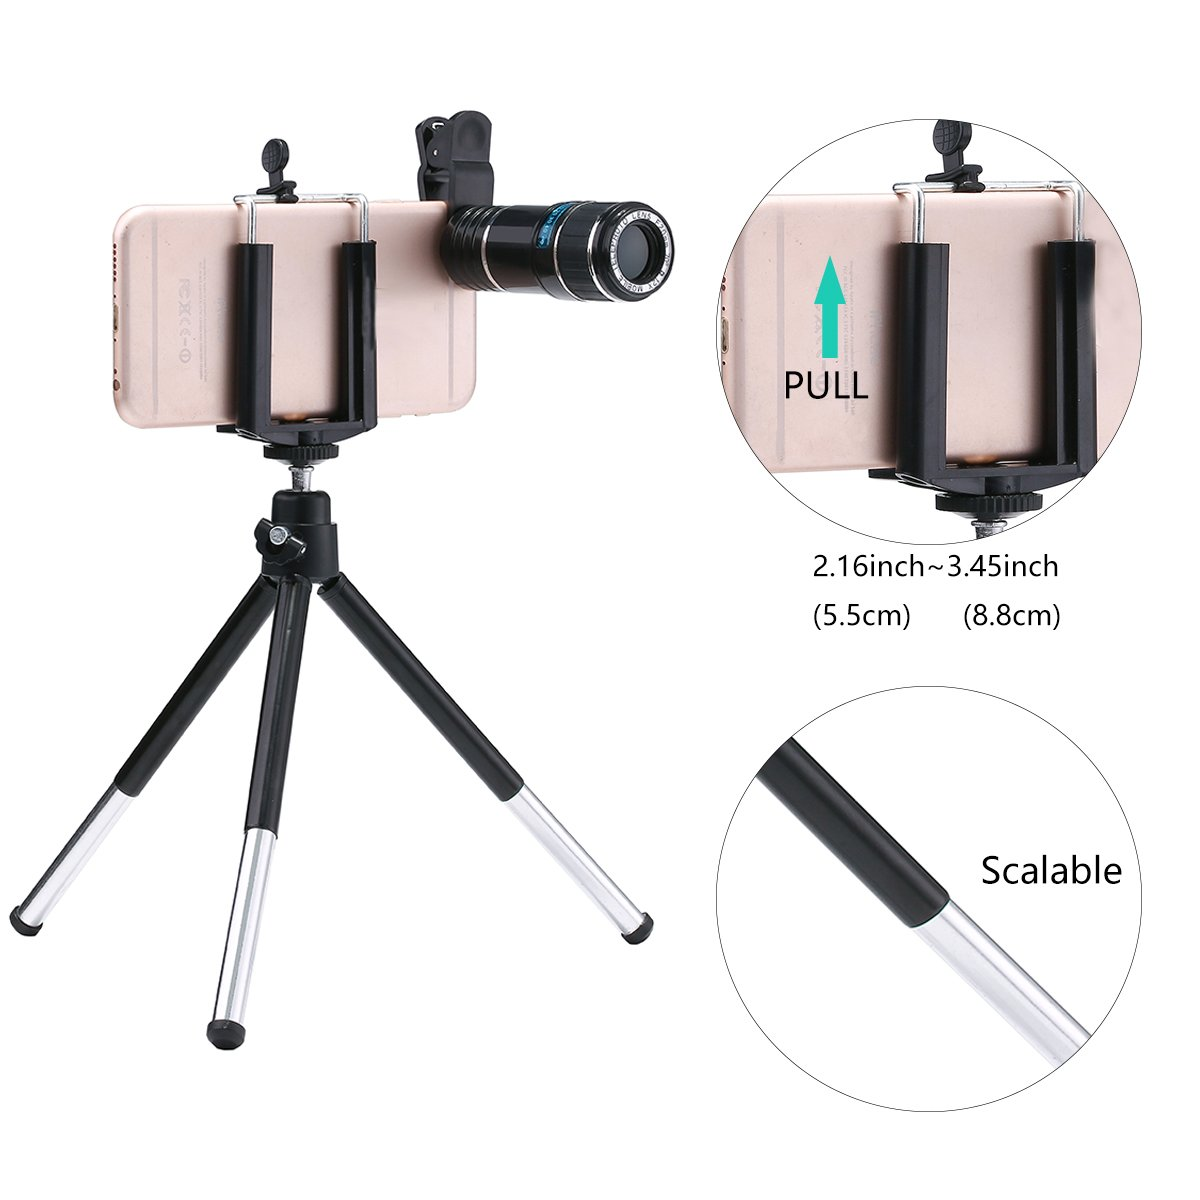 Phone Camera Lens, MSDADA Telephoto Lens Kit, 12X Optical Telescope, Fisheye, Wide Angle and Macro Lens, Retractable Tripod with Bluetooth Shutter for IPhone, Samsung, Most of Smartphones,Tablets by MSDADA (Image #6)